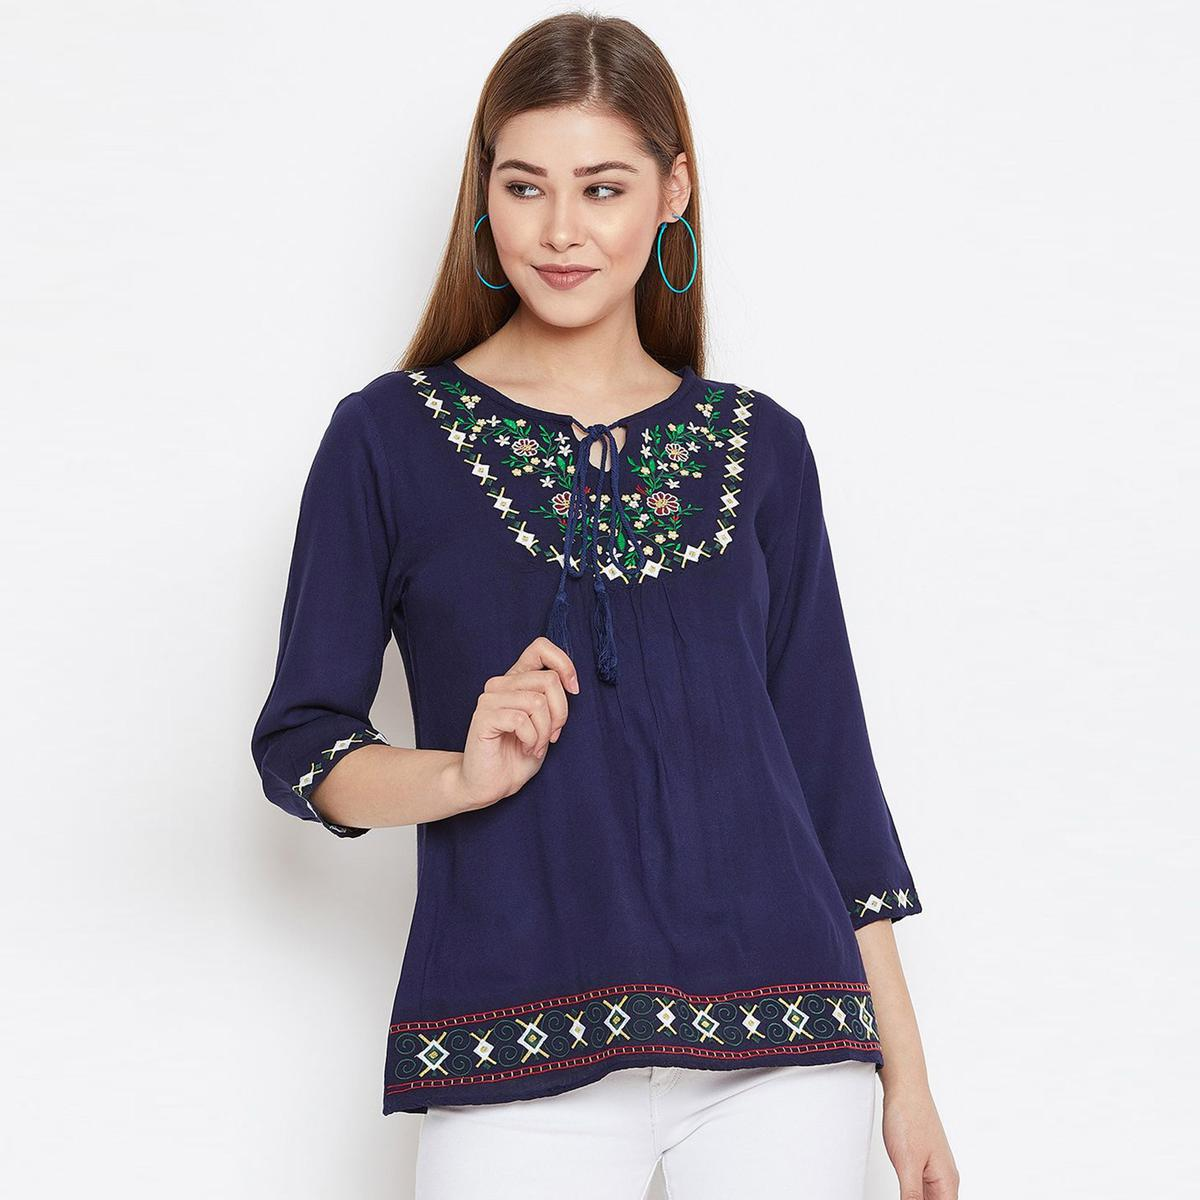 Engrossing Blue Colored Casual Wear Floral Embroidered Rayon Top